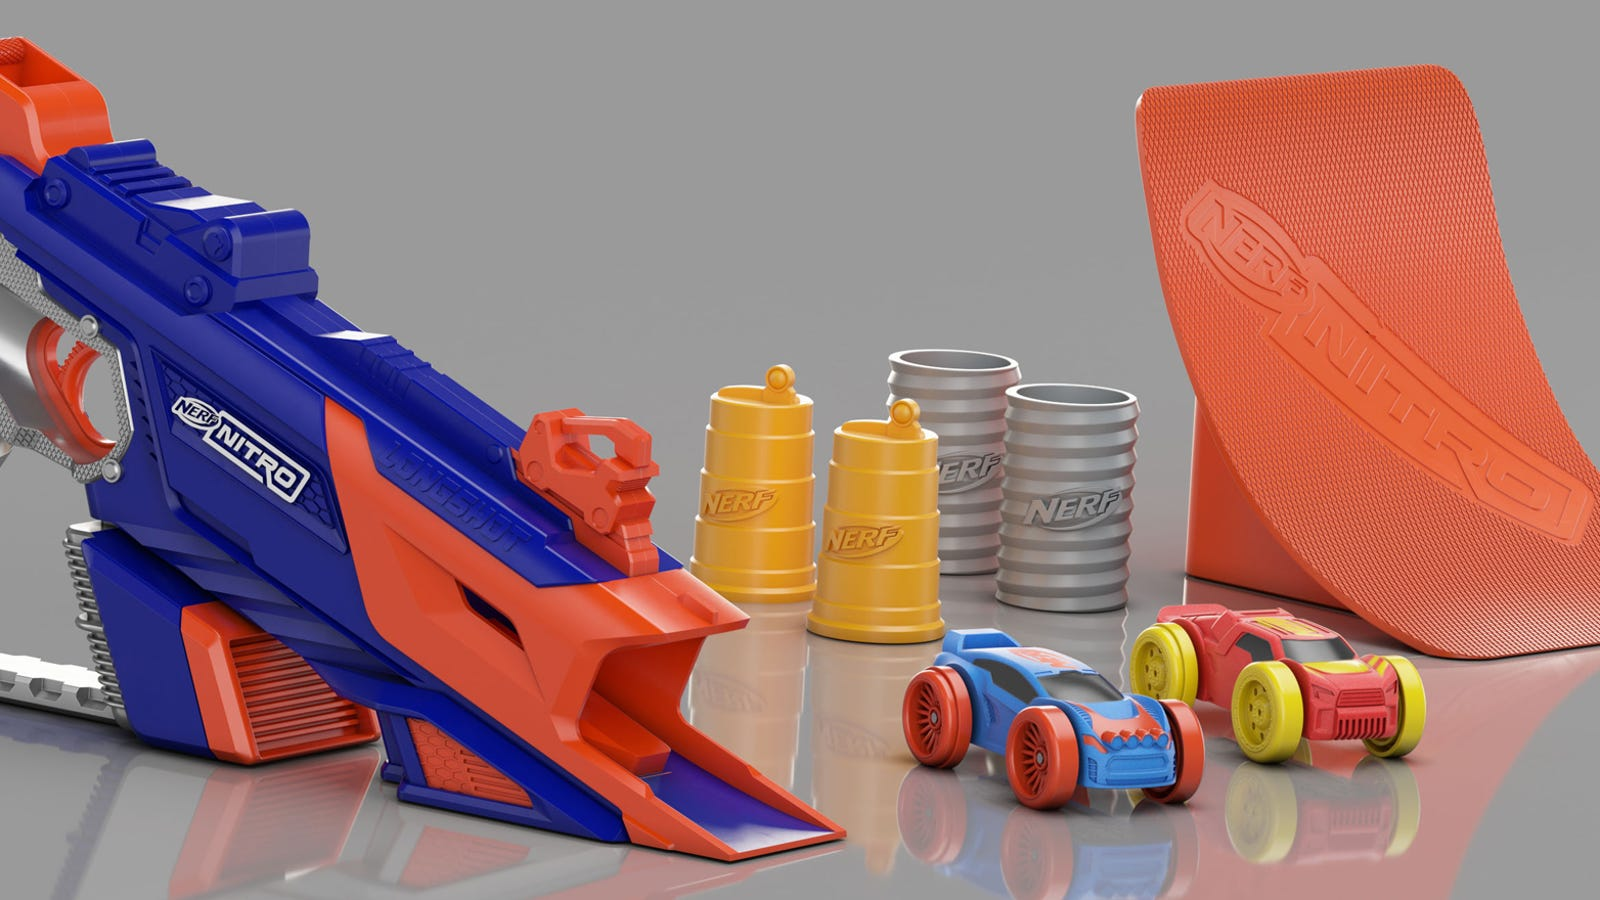 Car Foam Gun >> Nerf's New Blasters Shoot Tiny Foam Cars Instead of Darts